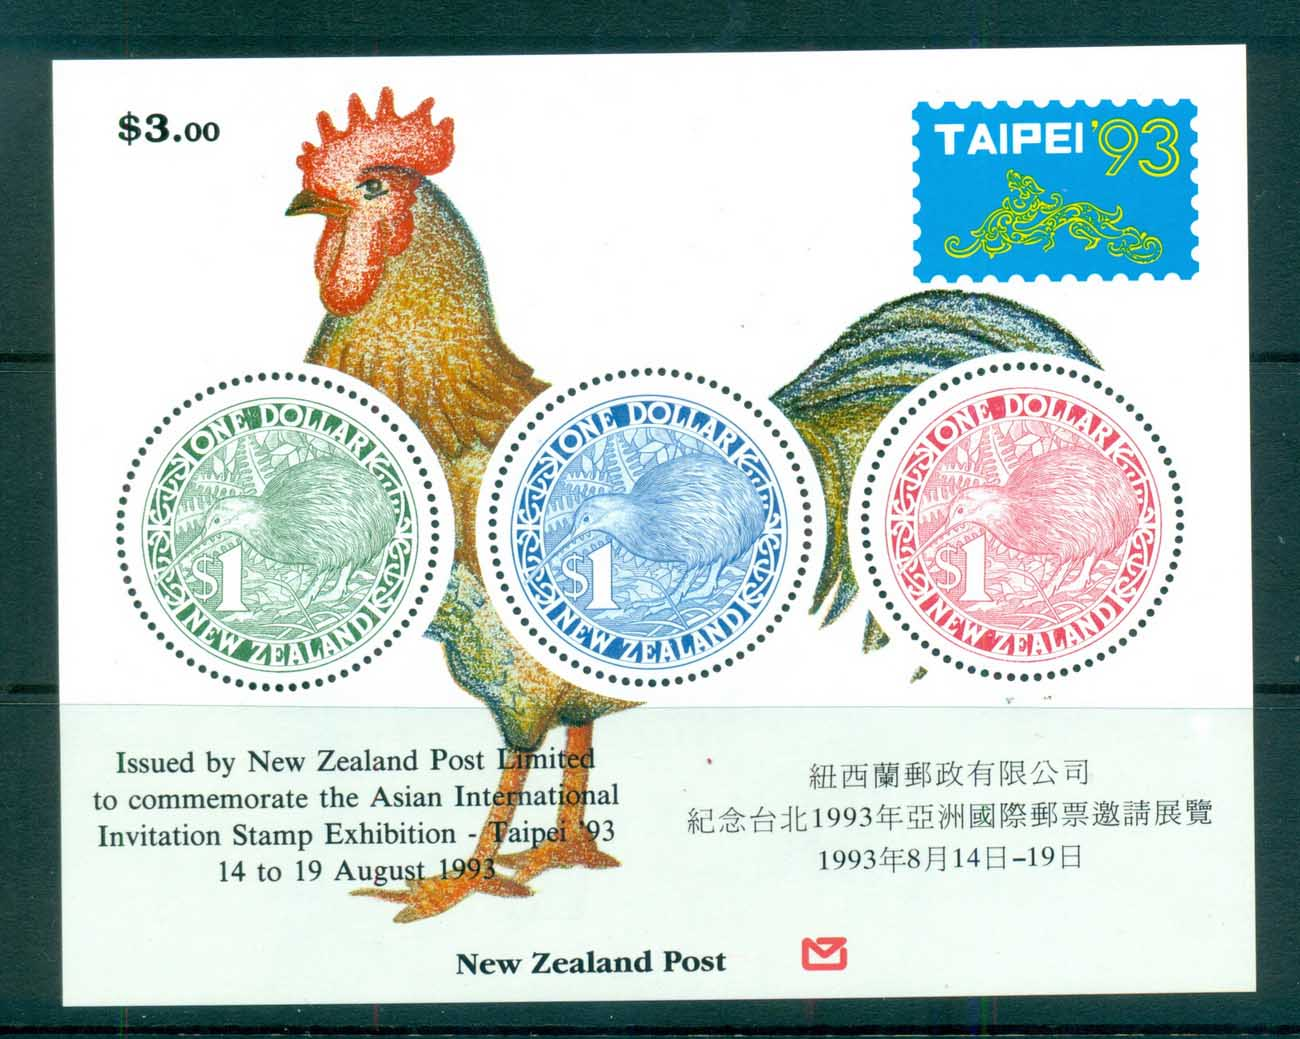 New Zealand 1993 Round Kiwis, Taipei Stamp Ex '93 MS MUH lot72346